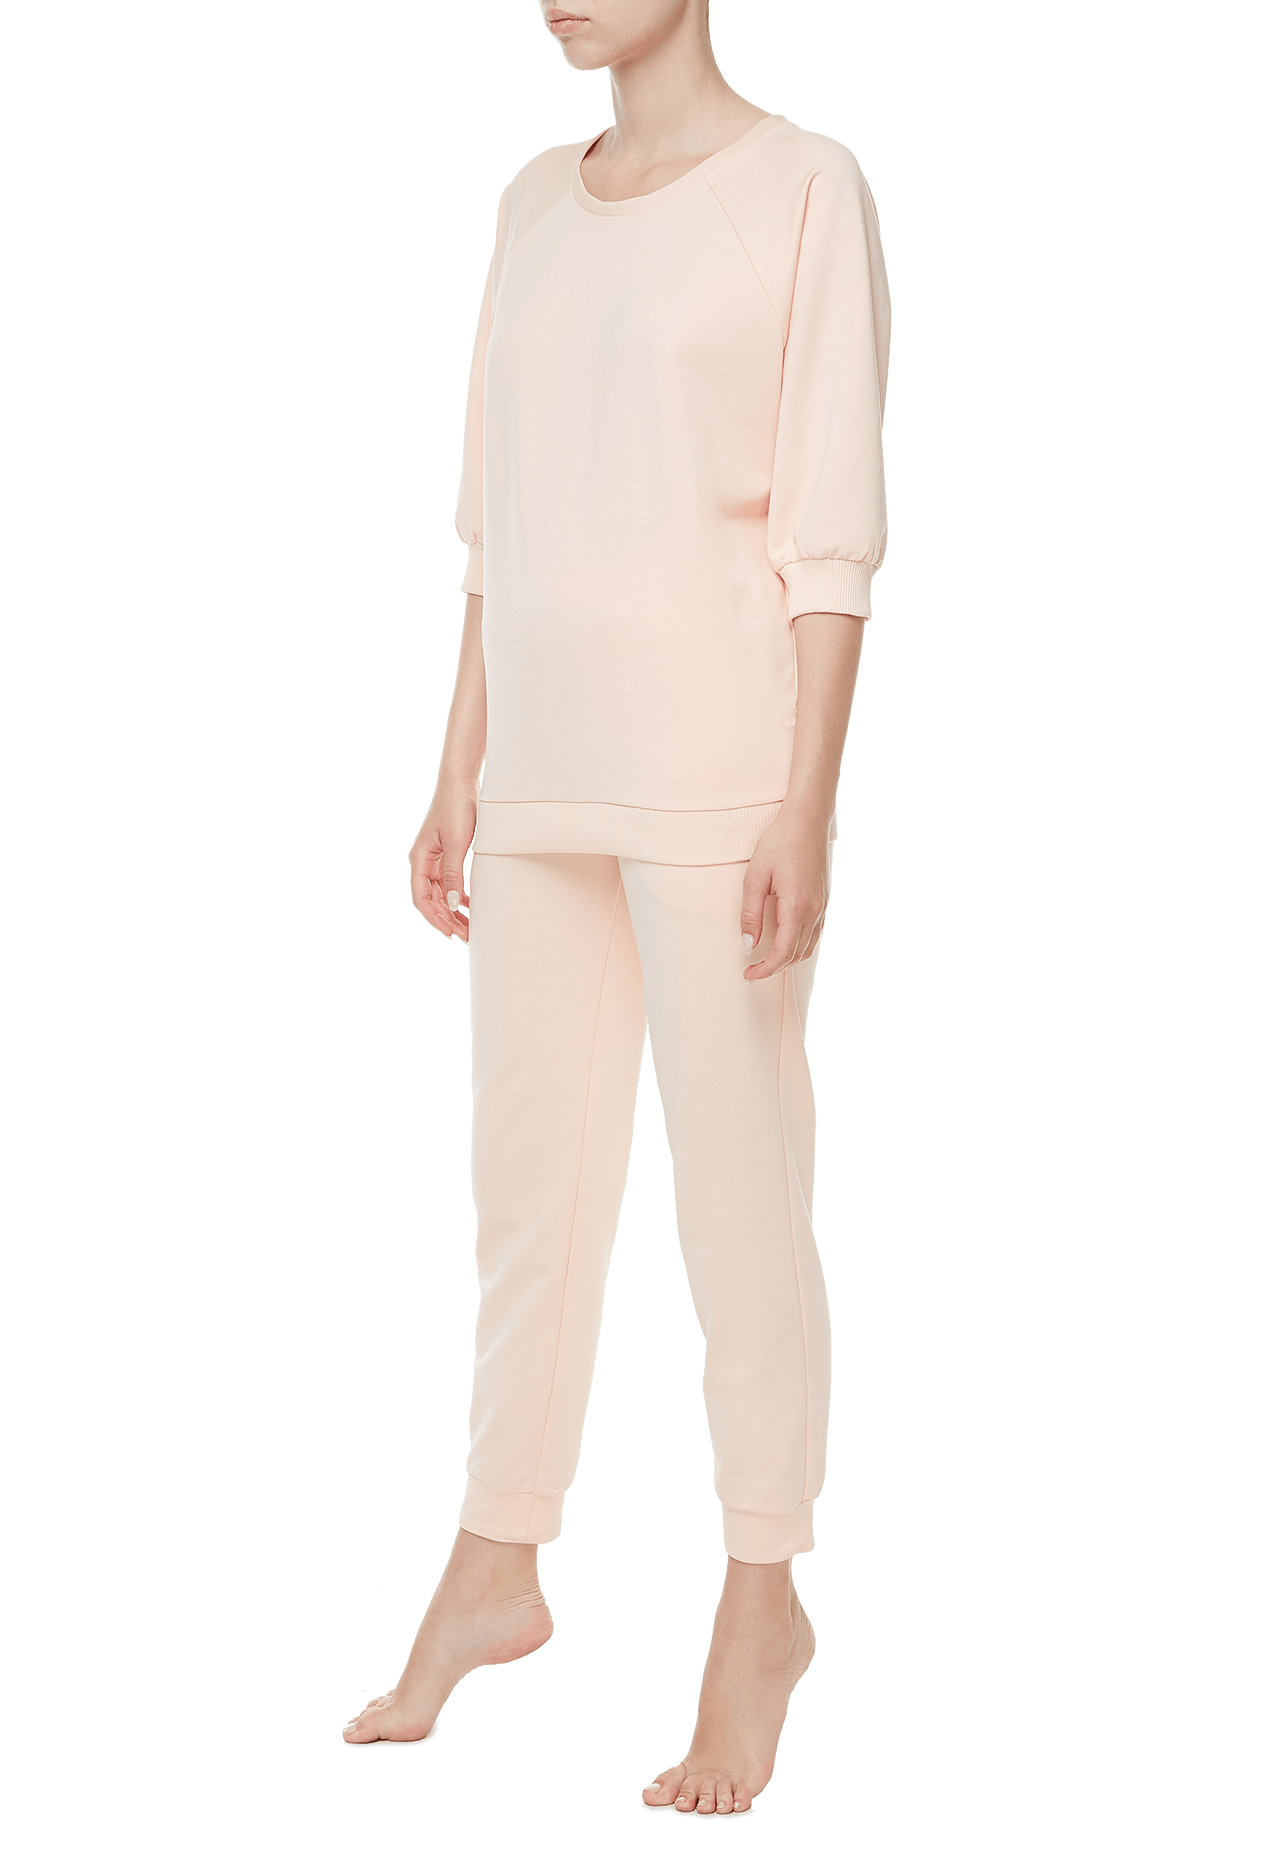 Костюм (кофта, брюки) Suavite suit-hm383-pc-64211